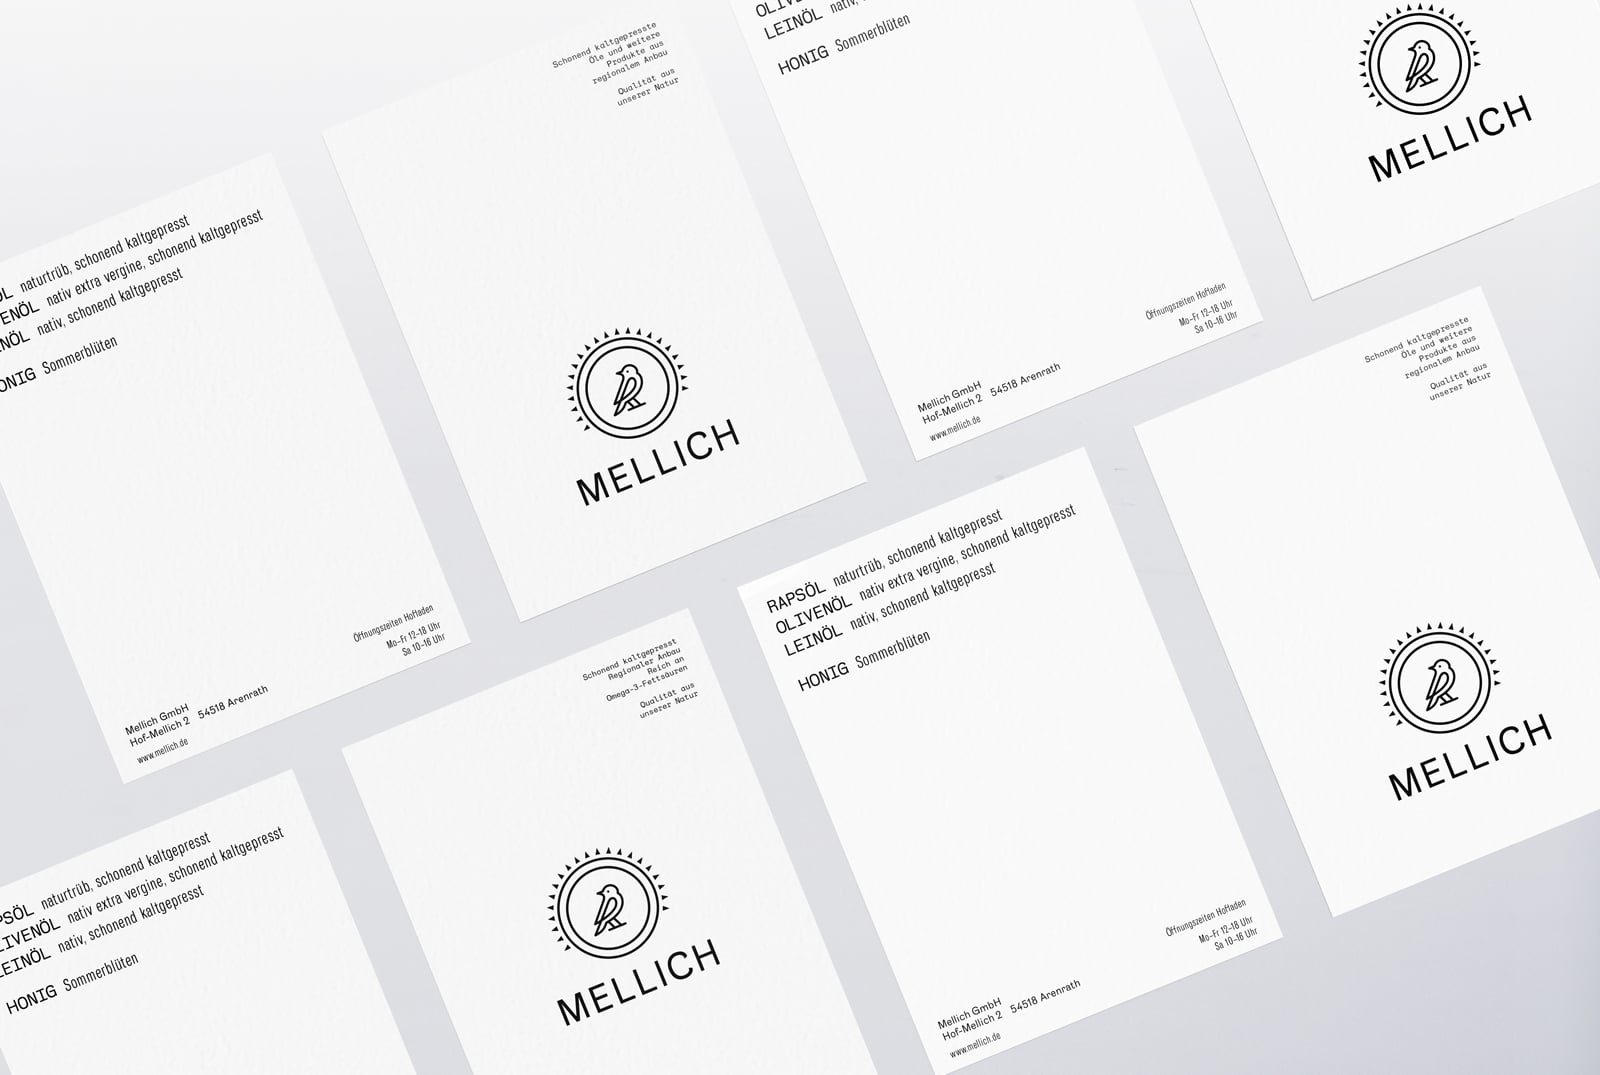 Mellich Öl Flyer Design